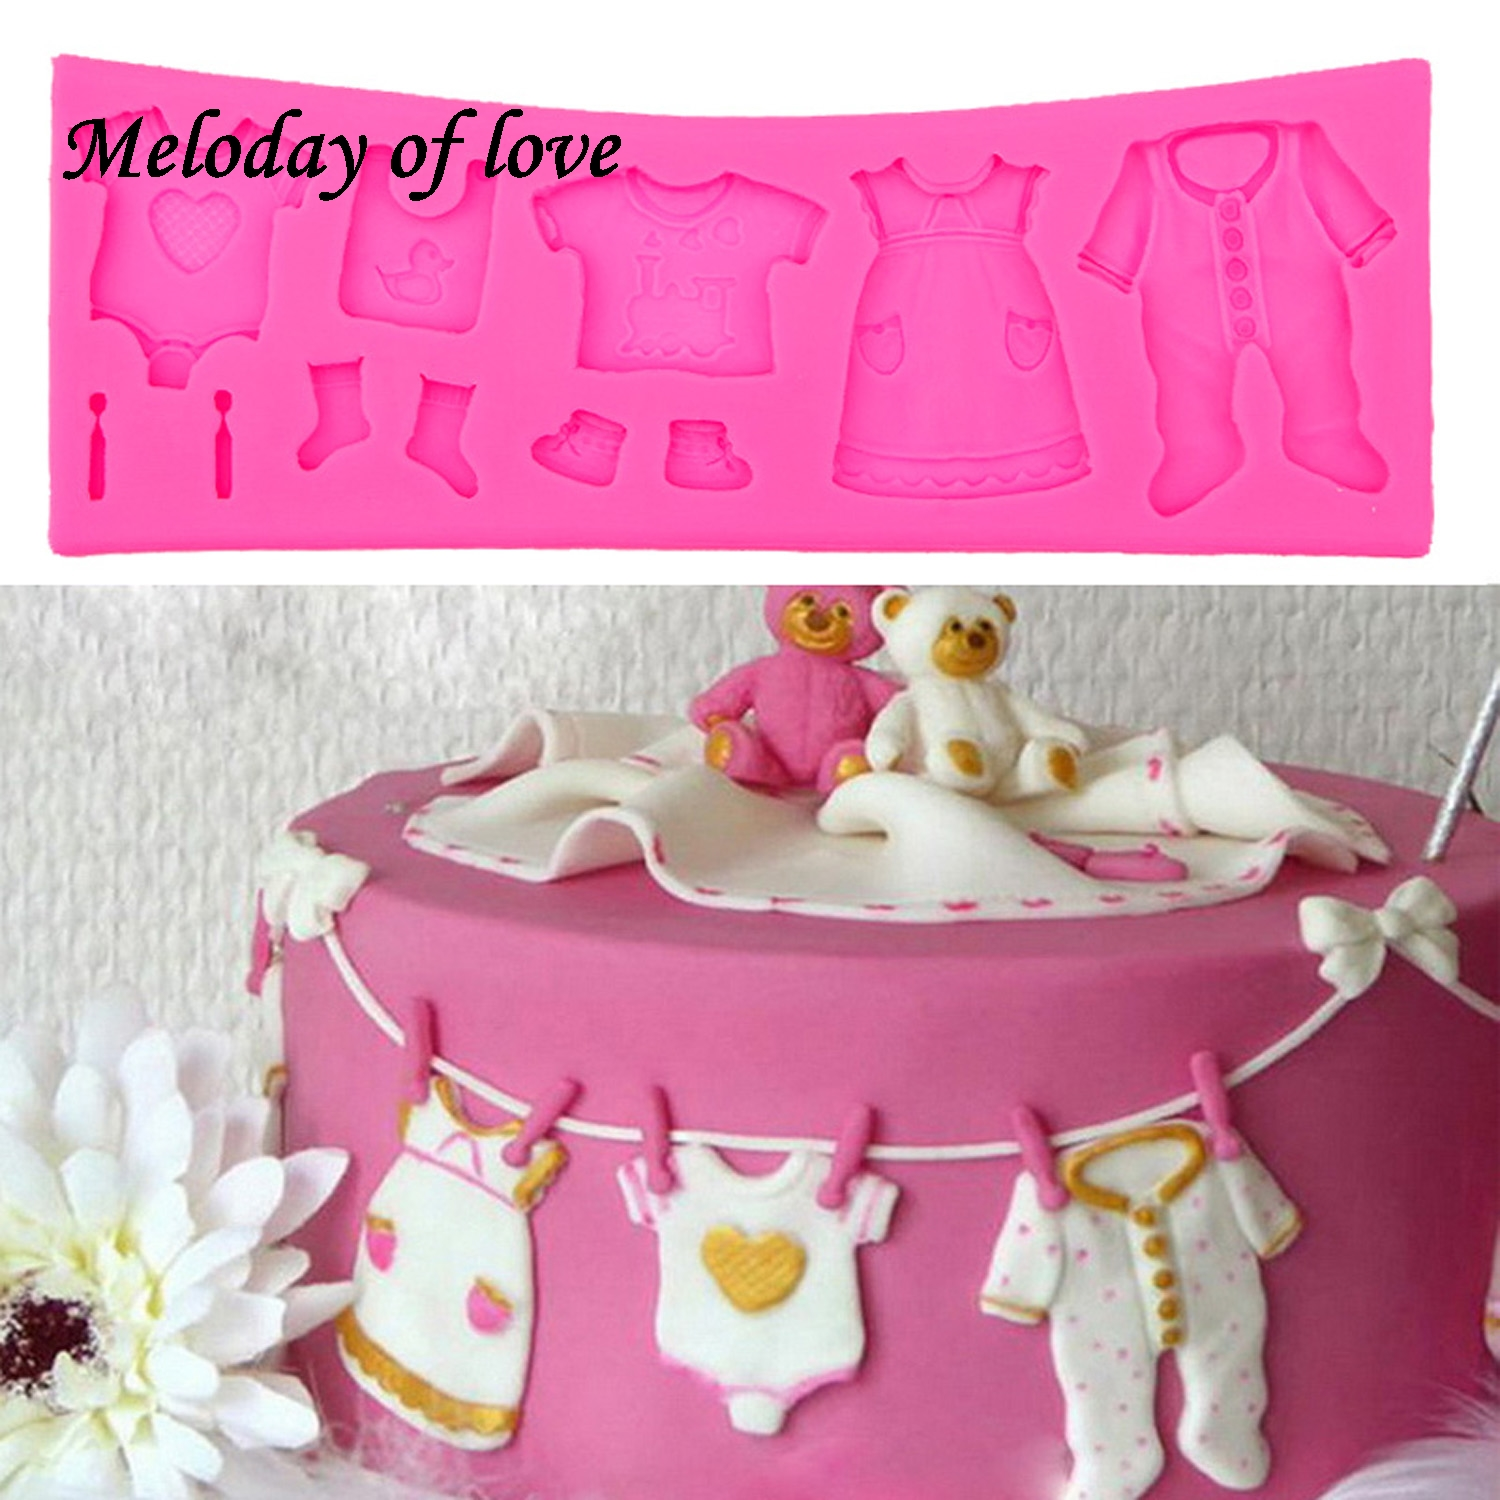 Hot Selling Pop 3D Babykleertjes Douche DIY Silicone Mold Fondant Keuken Cake Decorating Mold voor Chocolade Bakken Tools T0534